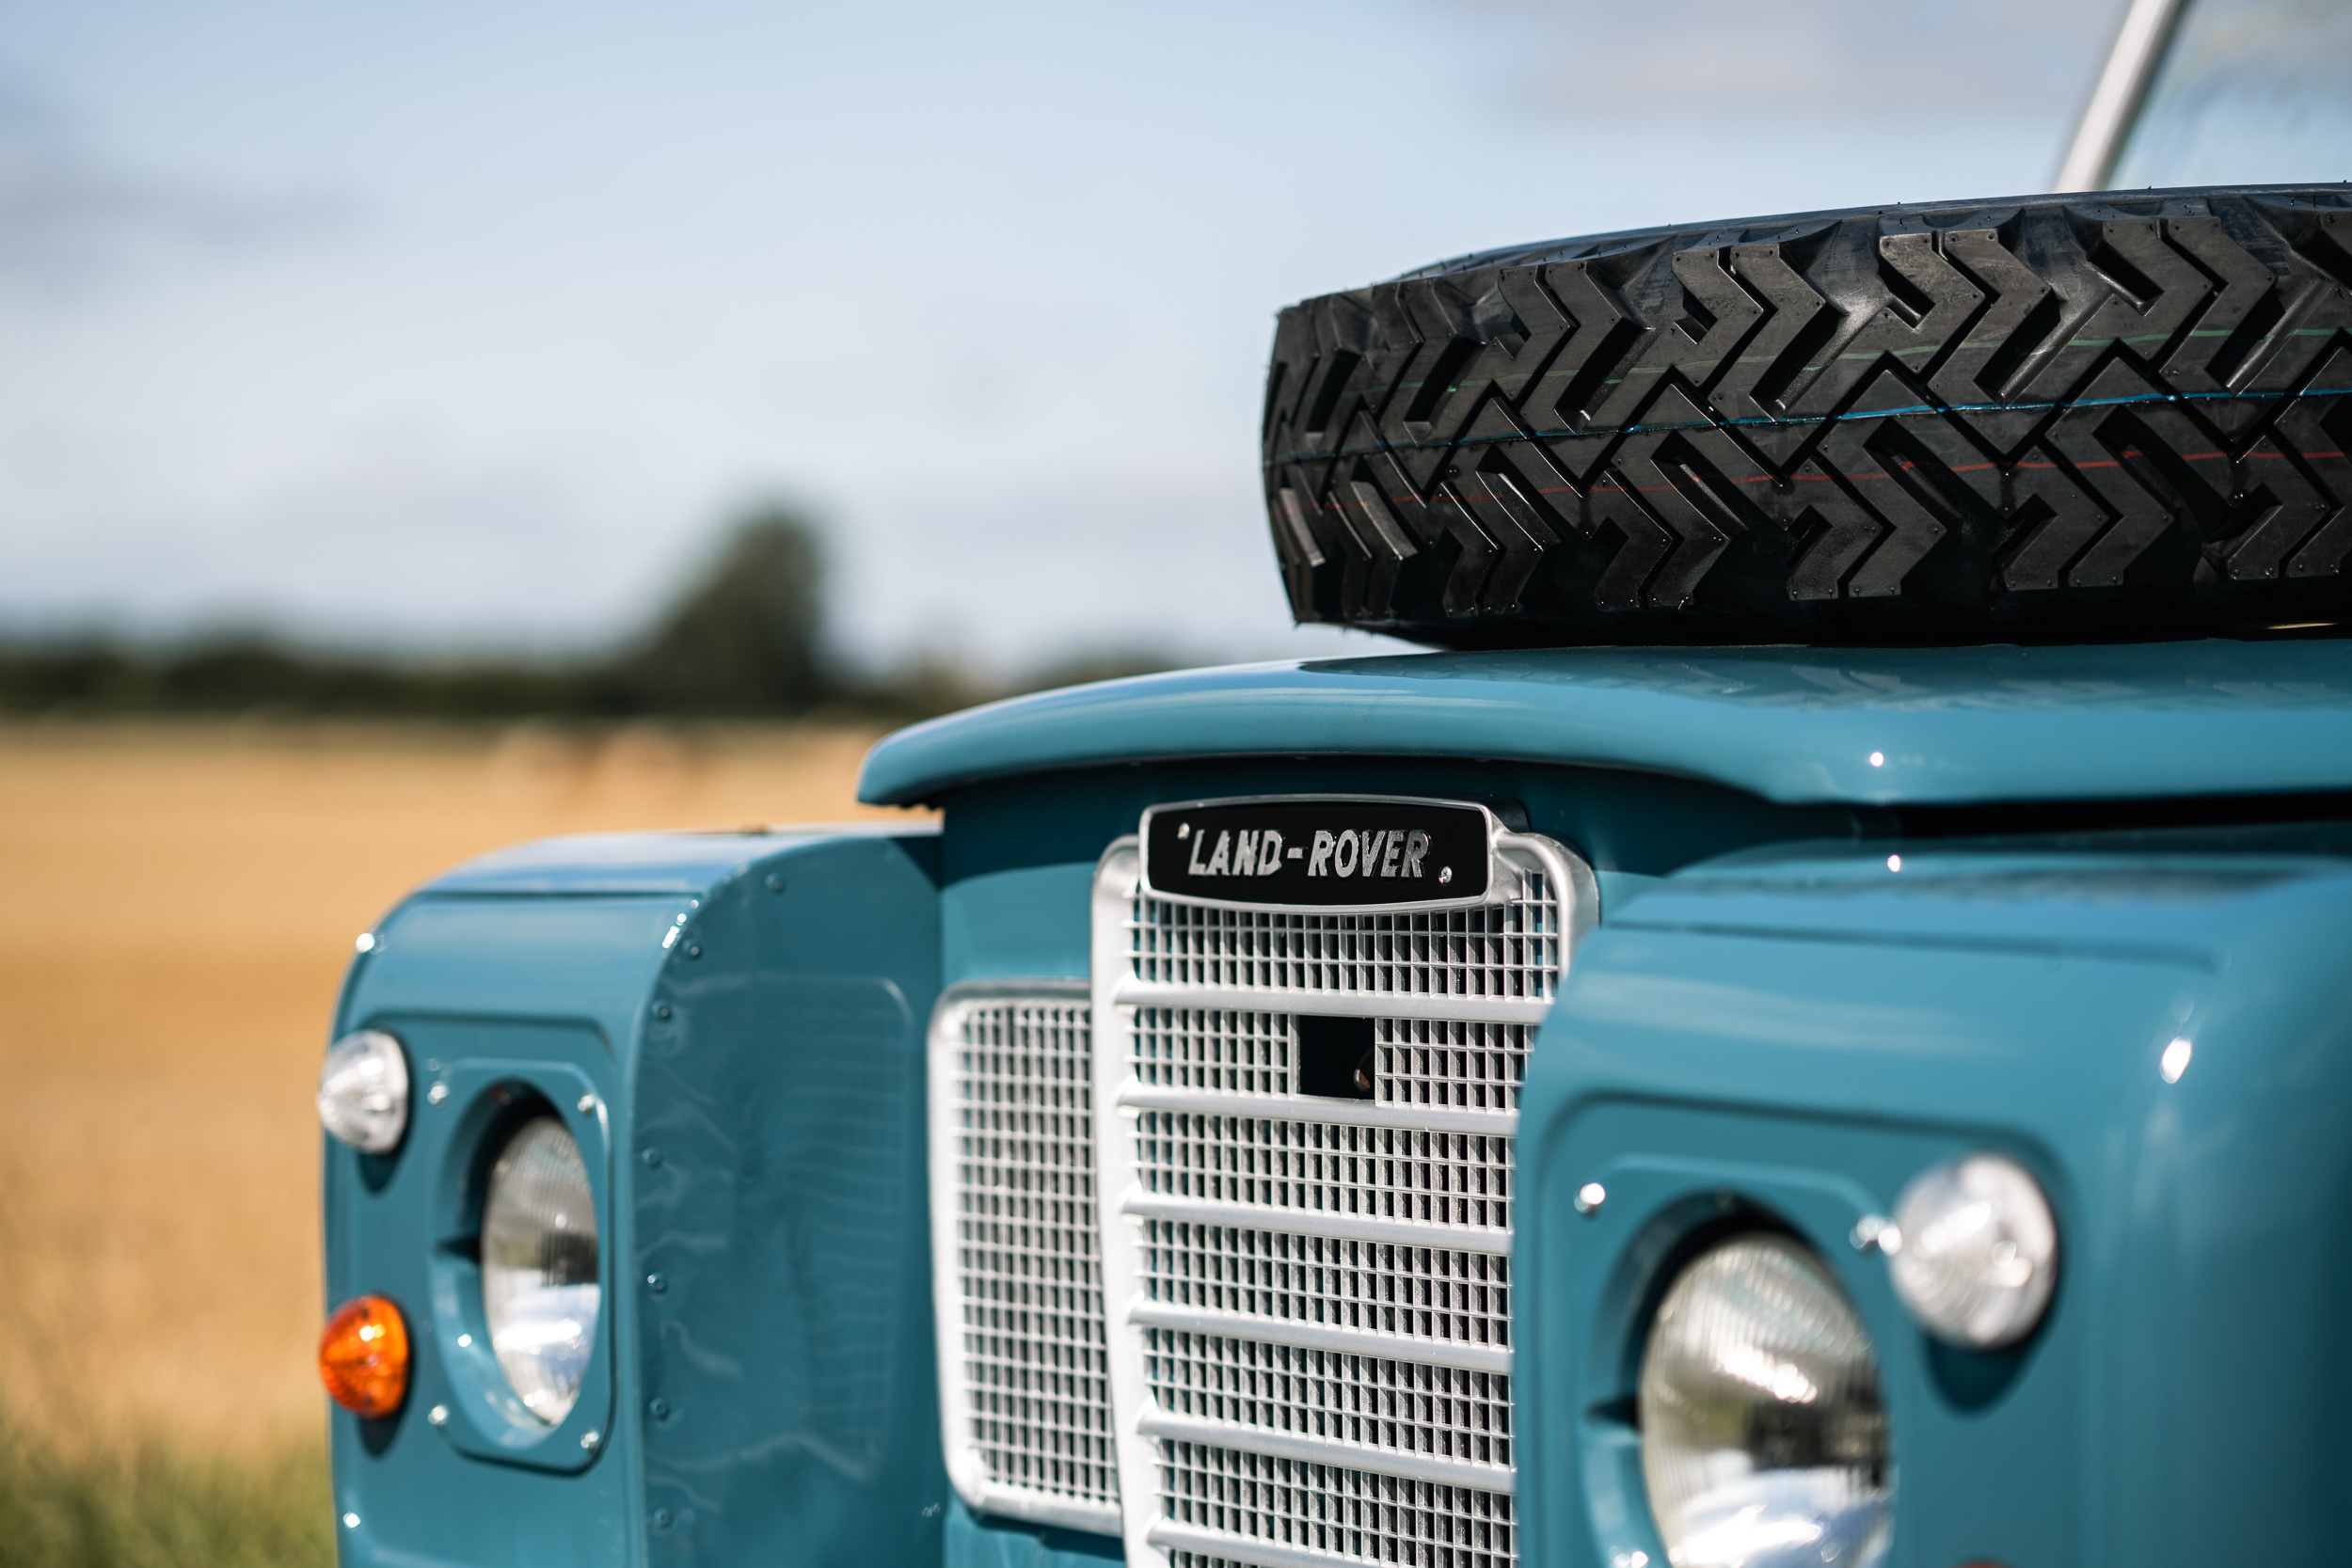 1982 Land Rover front end